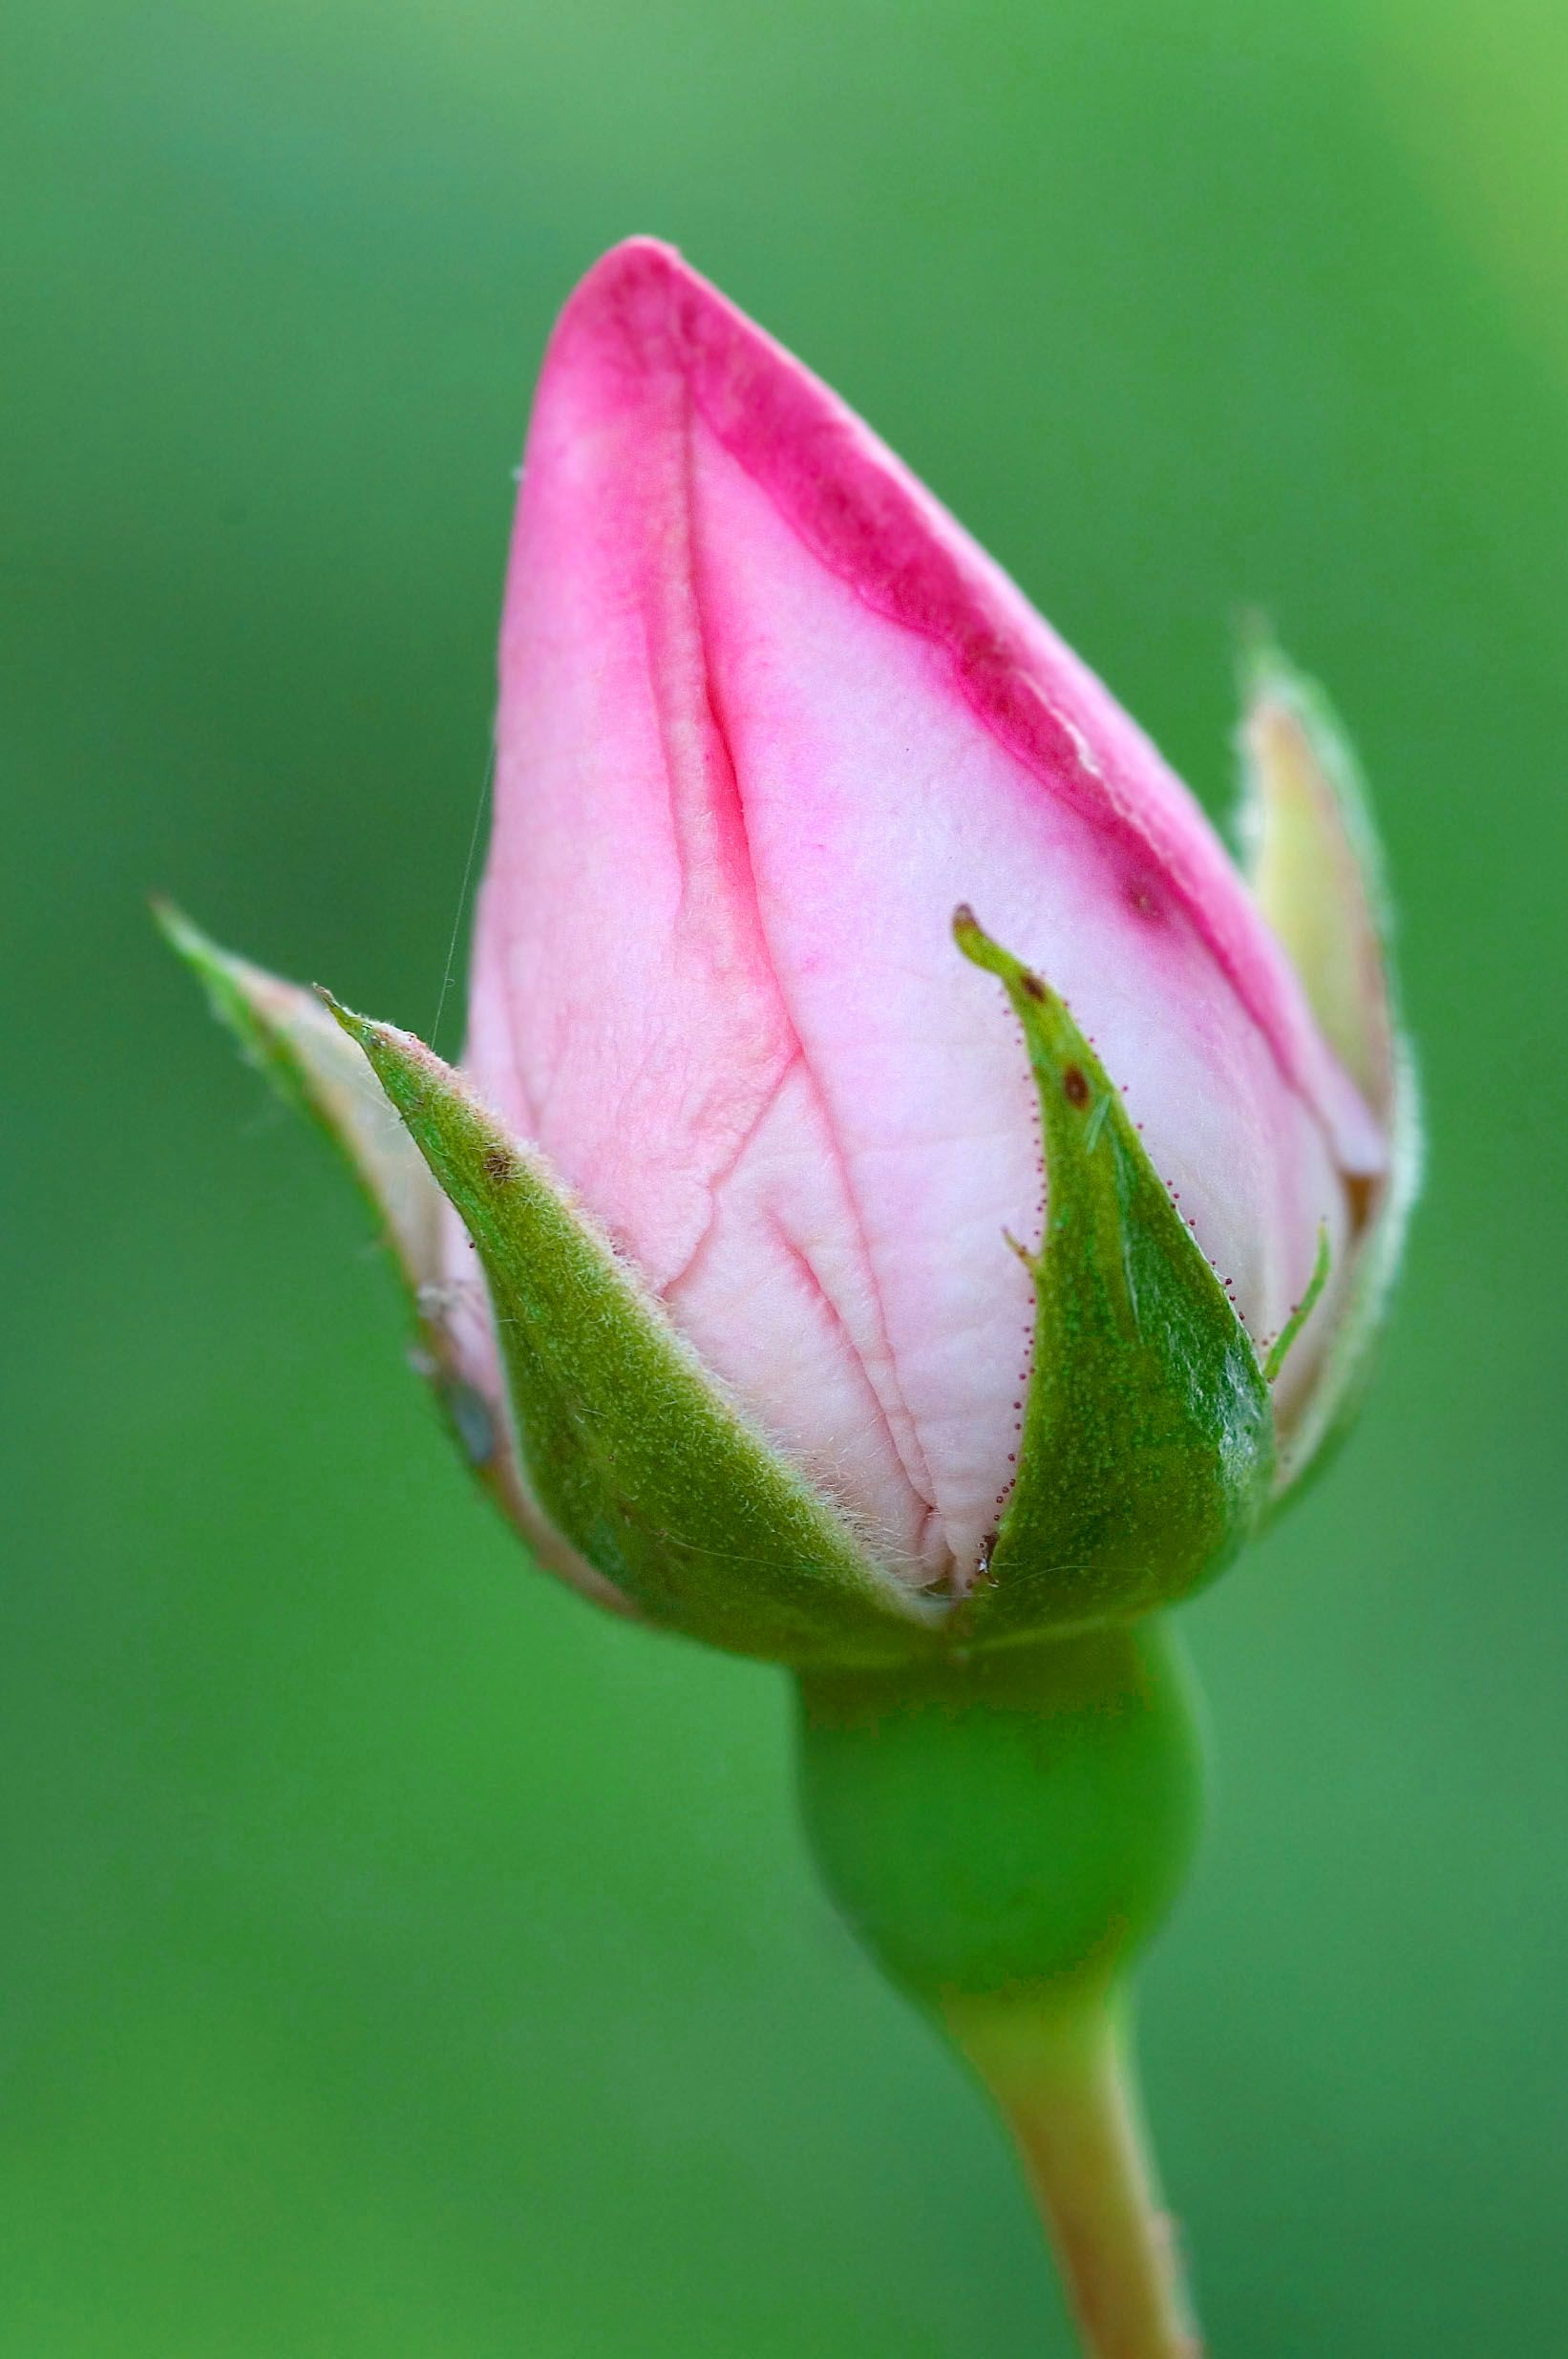 The Most Beautiful Pink Rose buds Description Rose bud